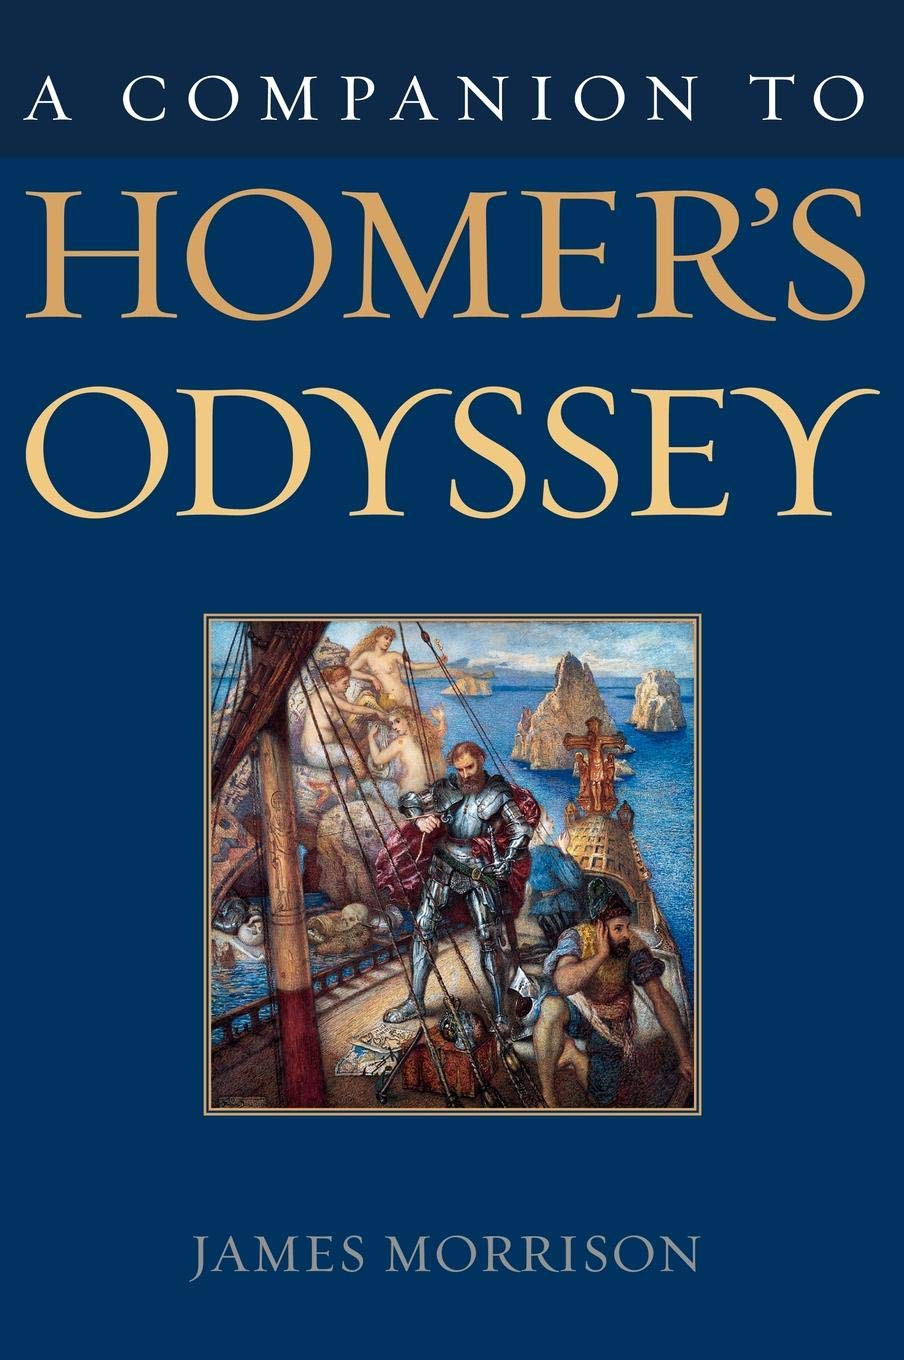 An examination of the treatment of the women in the odyssey by homer